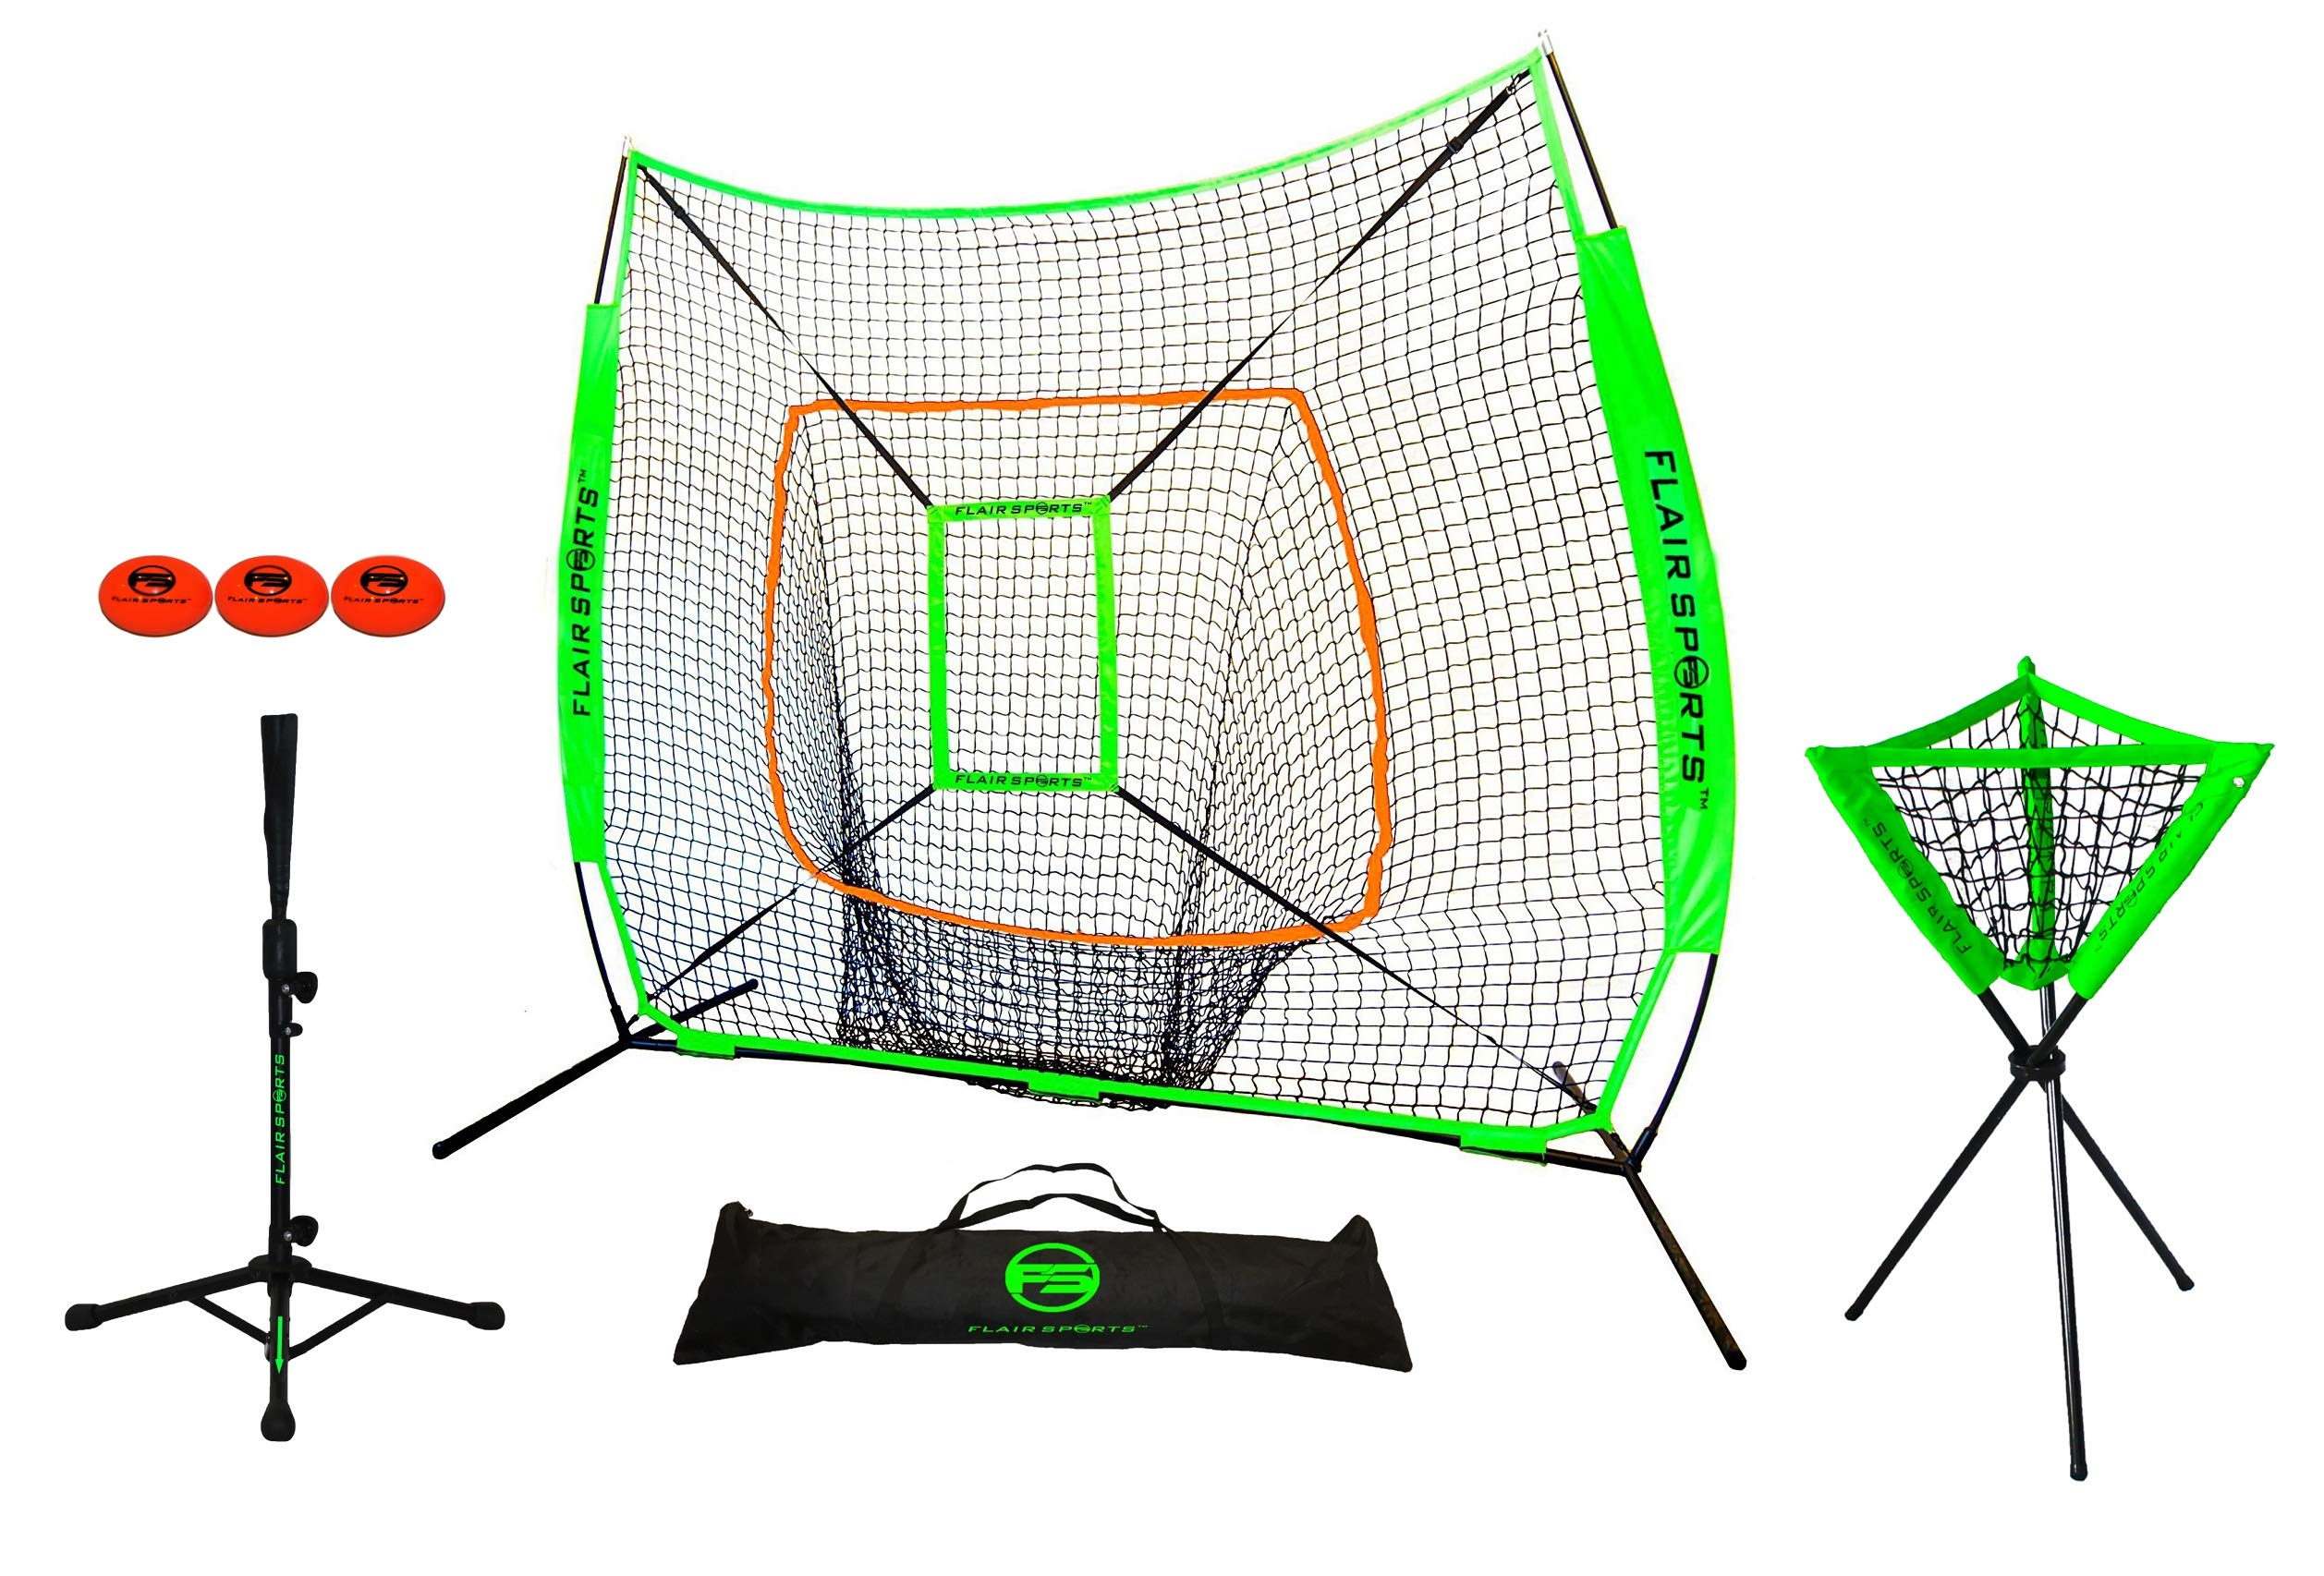 Flair Sports Baseball & Softball Net for Hitting & Pitching Heavy Duty 7x7 Pro Series | Indoor & Outdoor Training Net | Includes Strike Zone/Hitting Portable Tee / 3 Weighted Balls/Caddy by Flair Sports